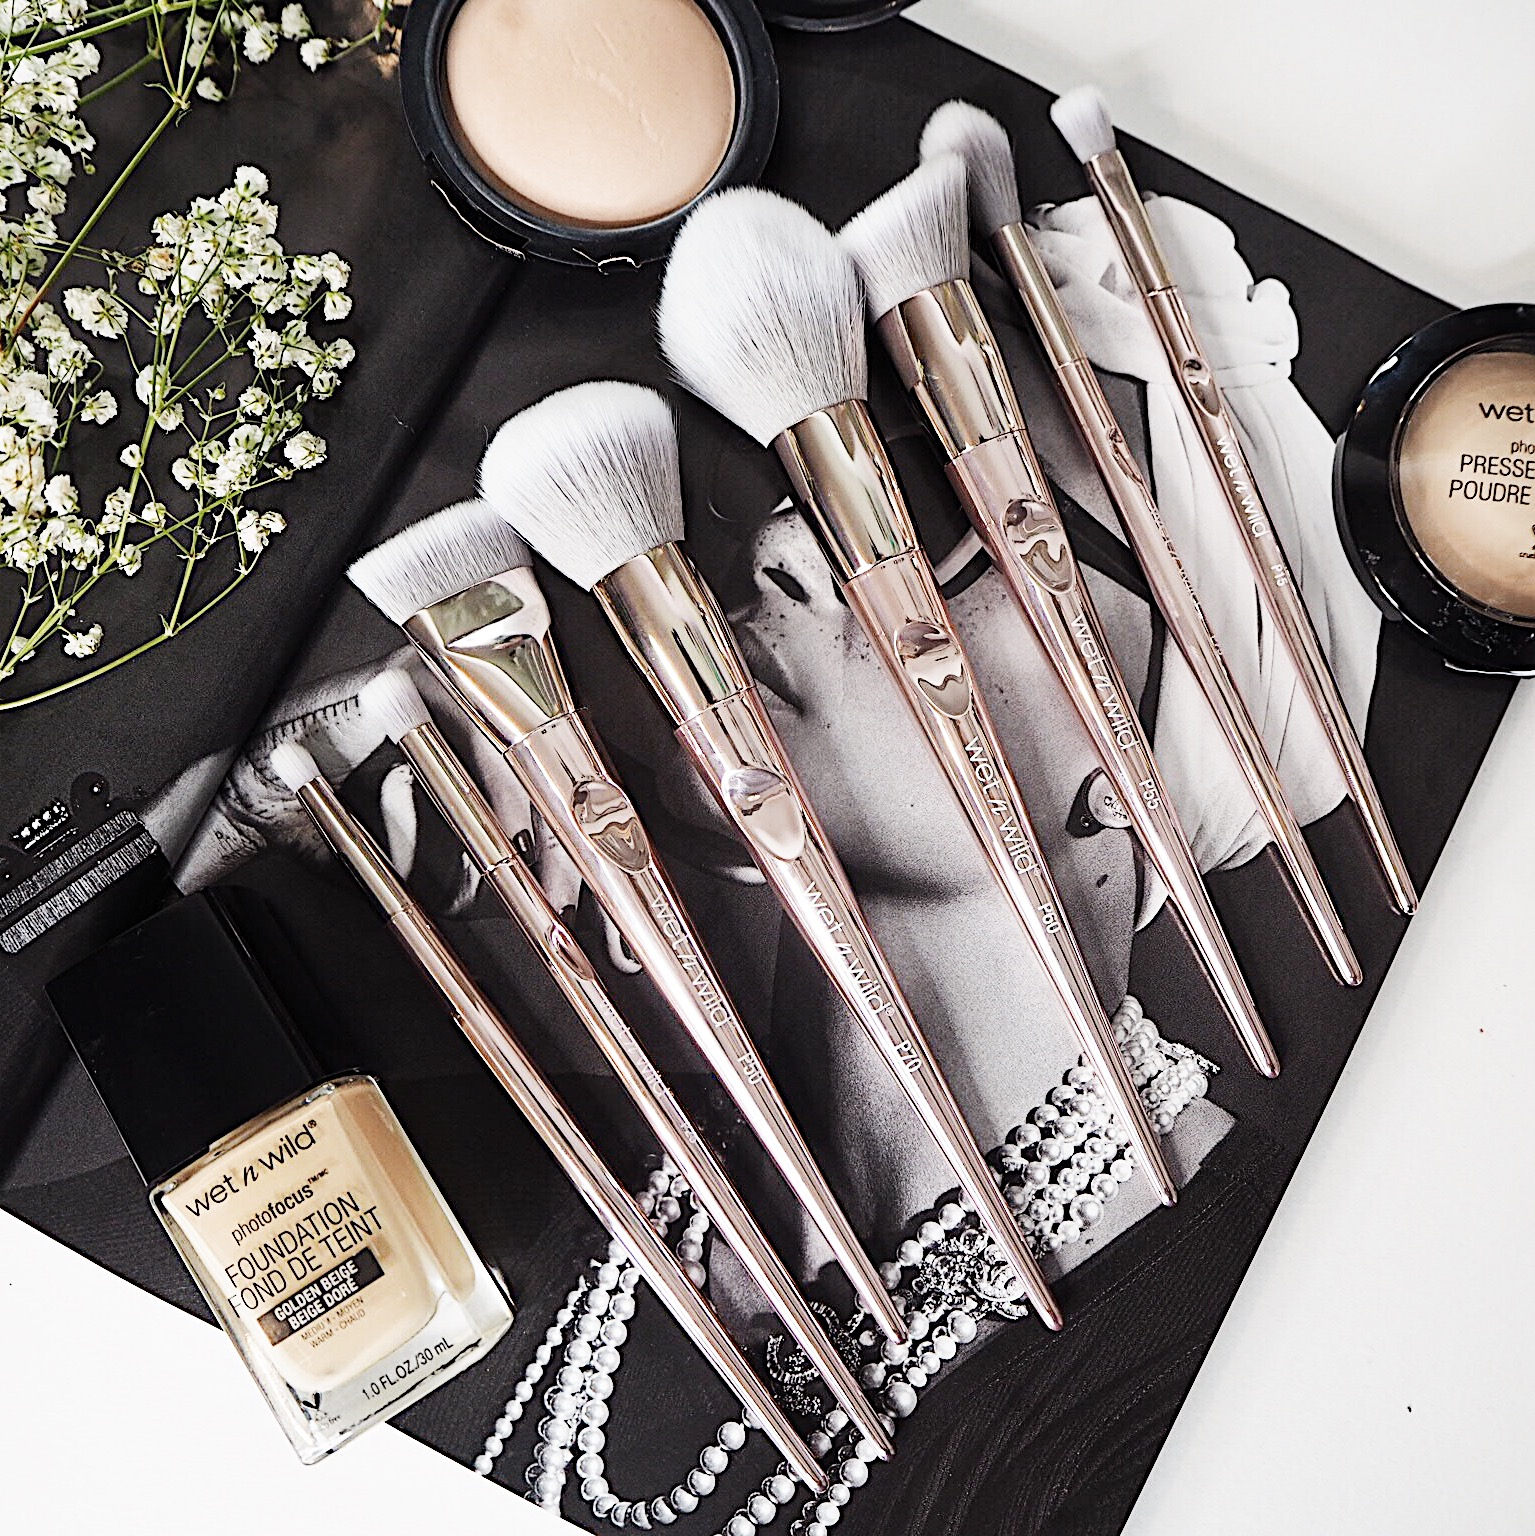 Wet N Wild Pro Brush Line – Affordable Cruelty Free